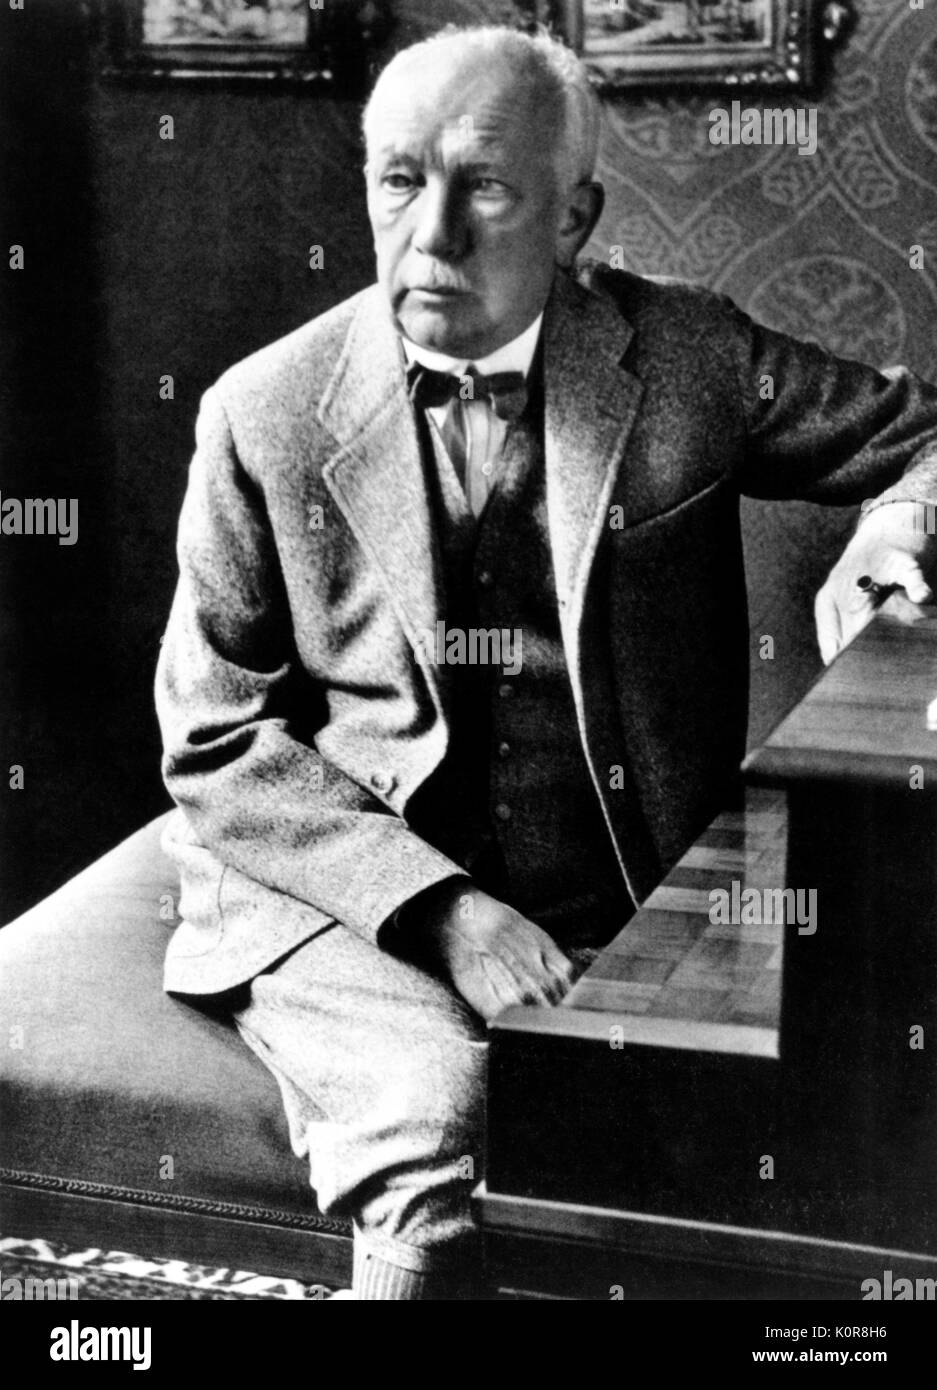 a biography of richard strauss a conductor and composer Richard strauss, the authoritative composer richard strauss strauss rapidly became a great conductor who was admired and sought after throughout germany.